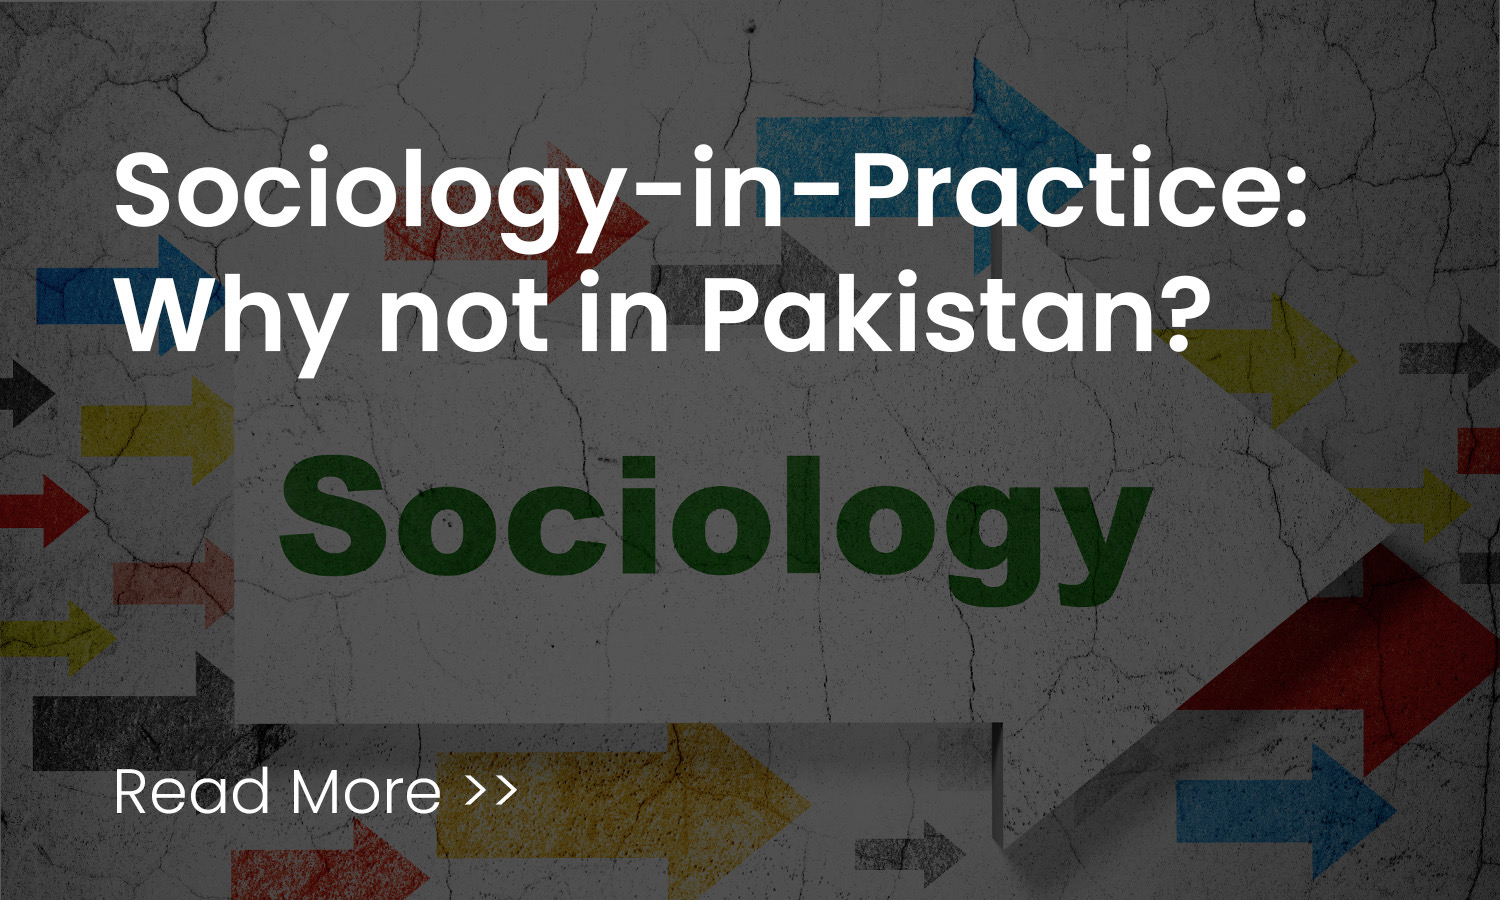 Sociology-in-Practice: Why not in Pakistan